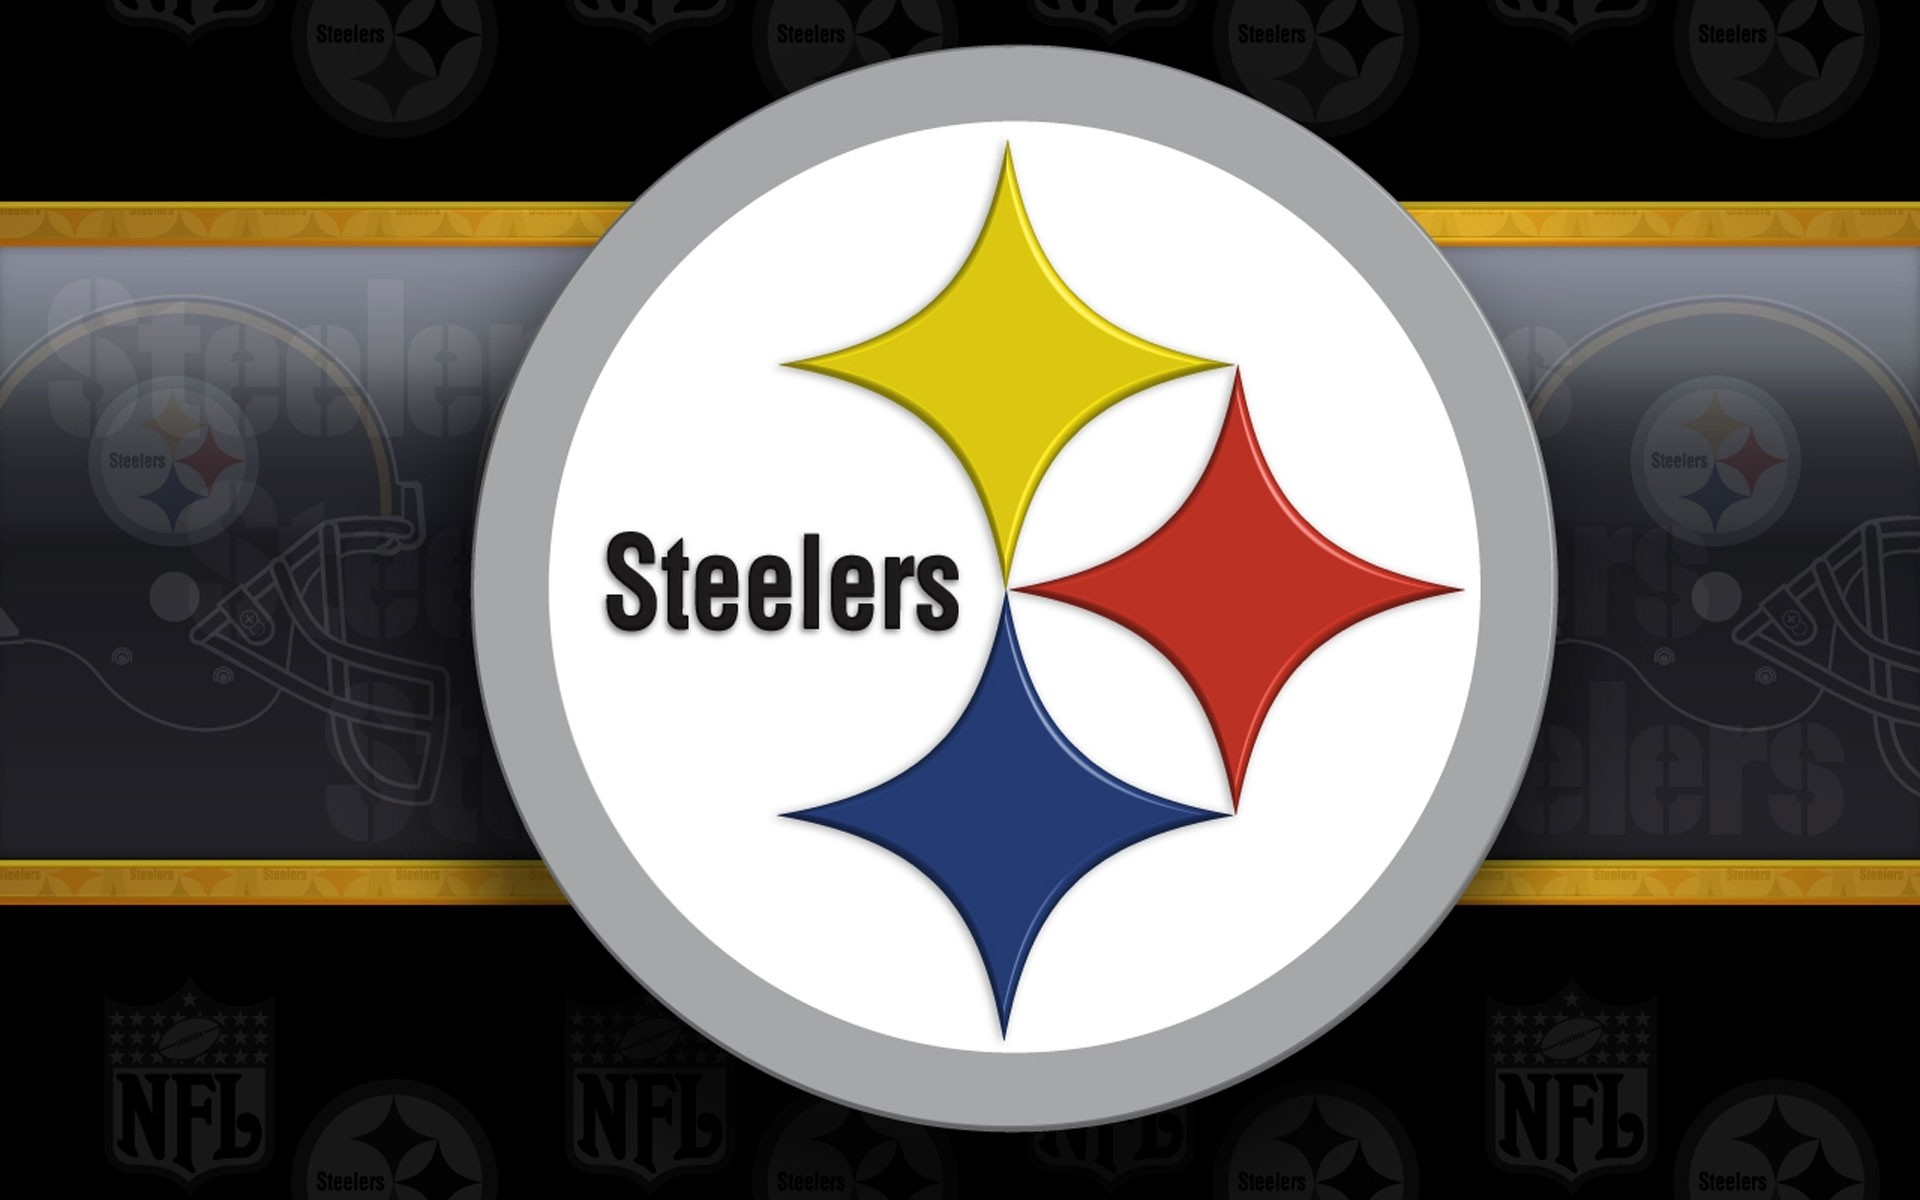 Res: 1920x1200, Title : magnificent pittsburgh steelers wallpapers. - media file. Dimension  : 1920 x 1200. File Type : JPG/JPEG